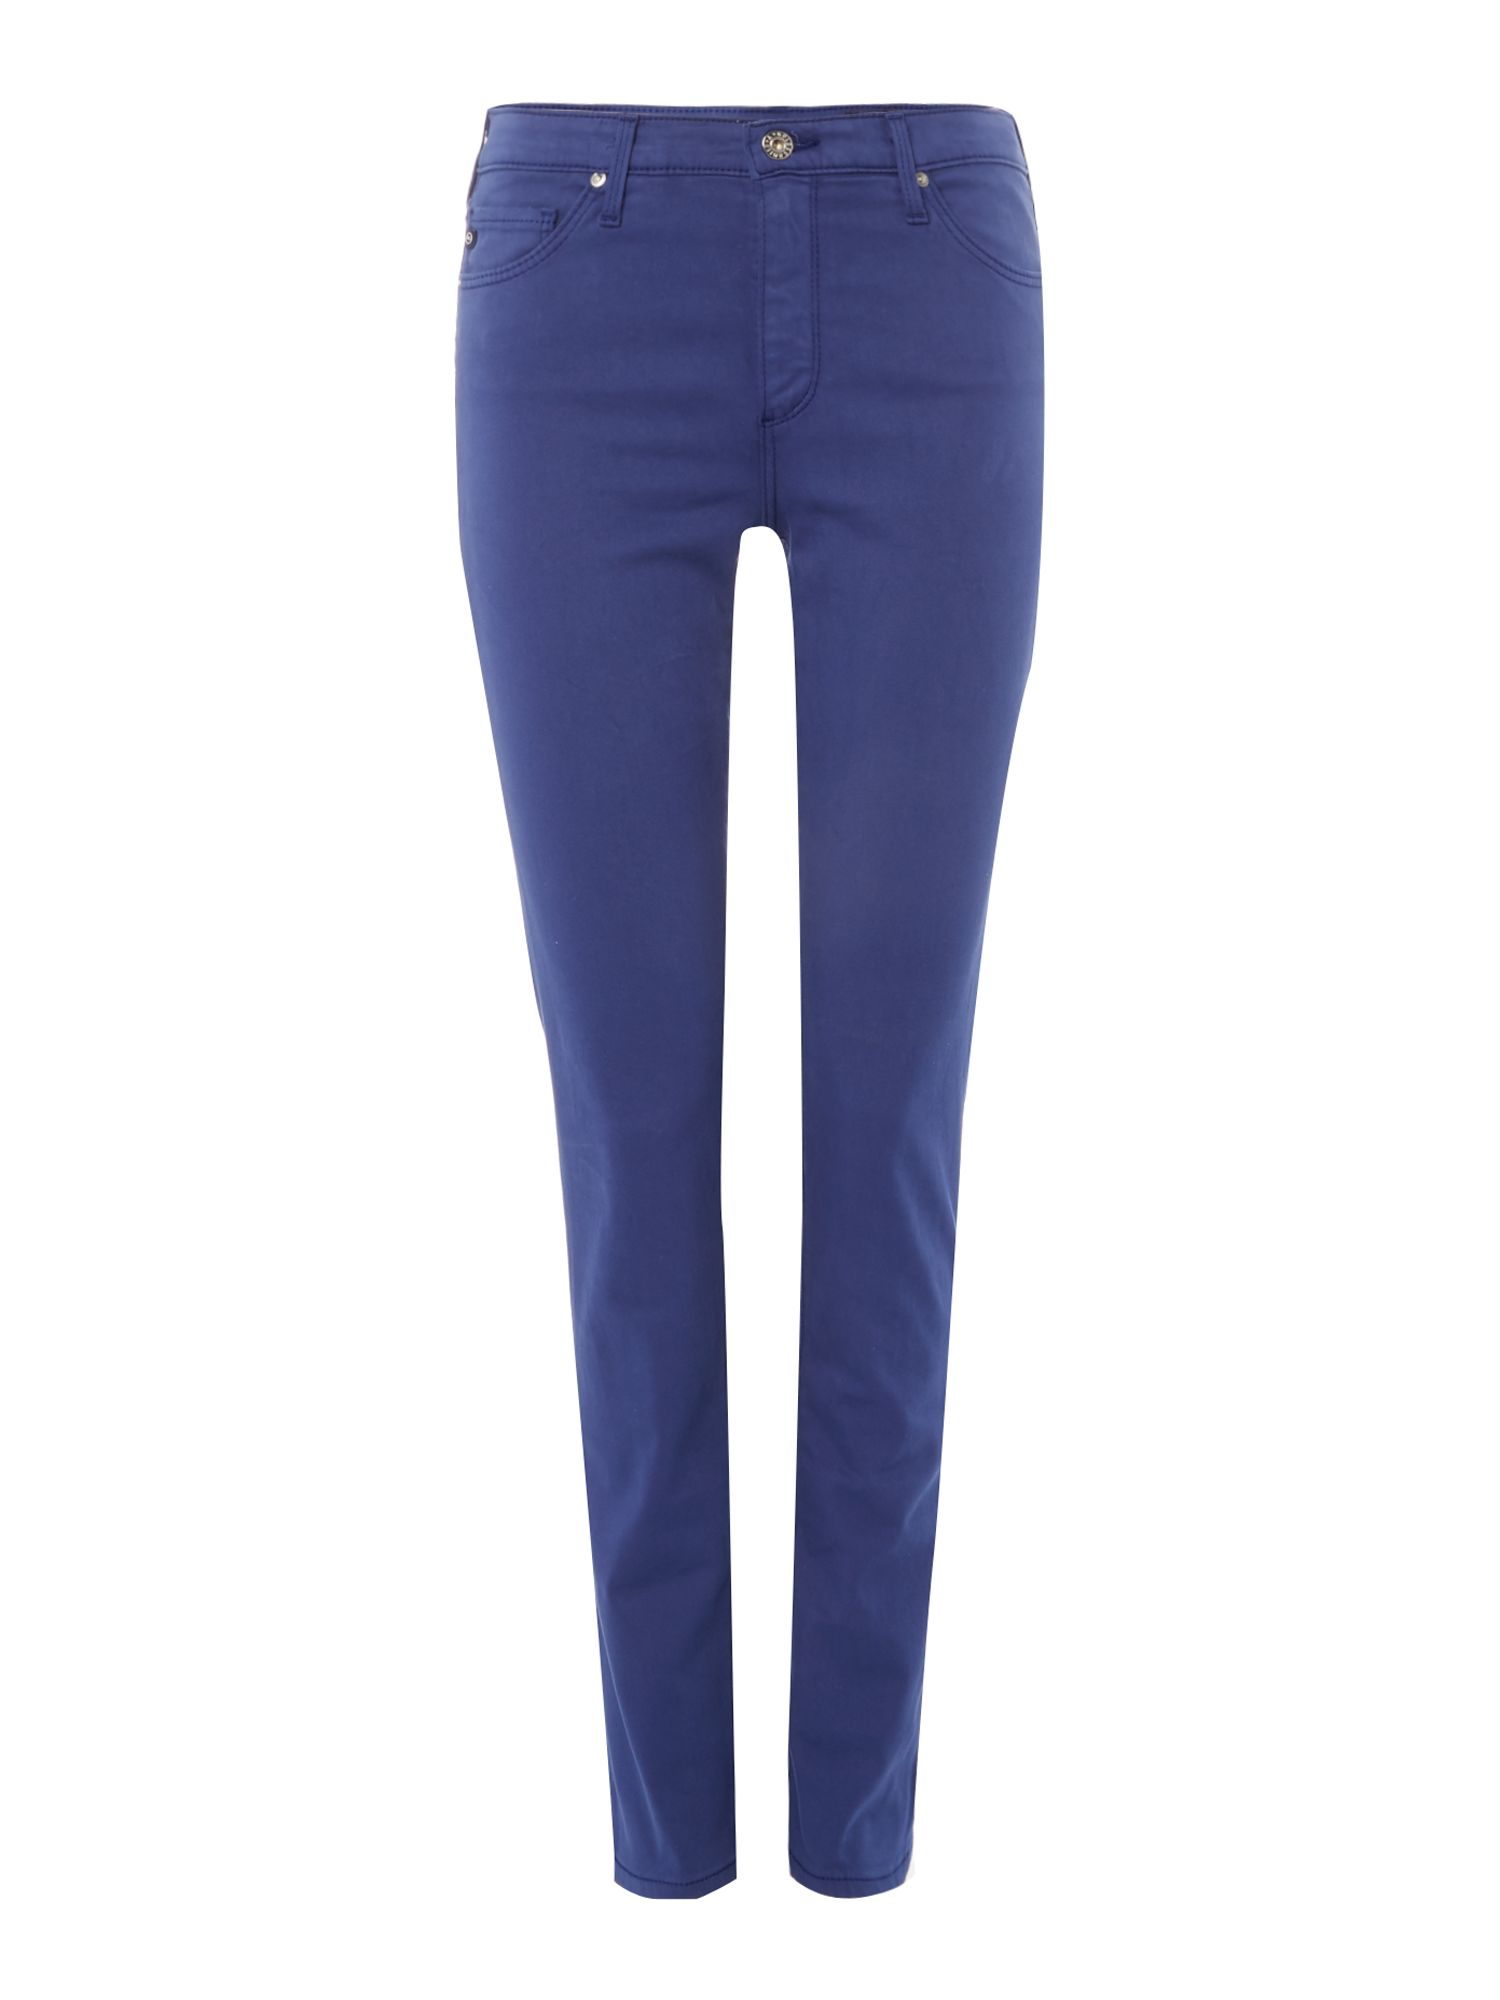 AG Jeans AG Jeans The Sateen Prima in Colonial Blue, Denim Rinse